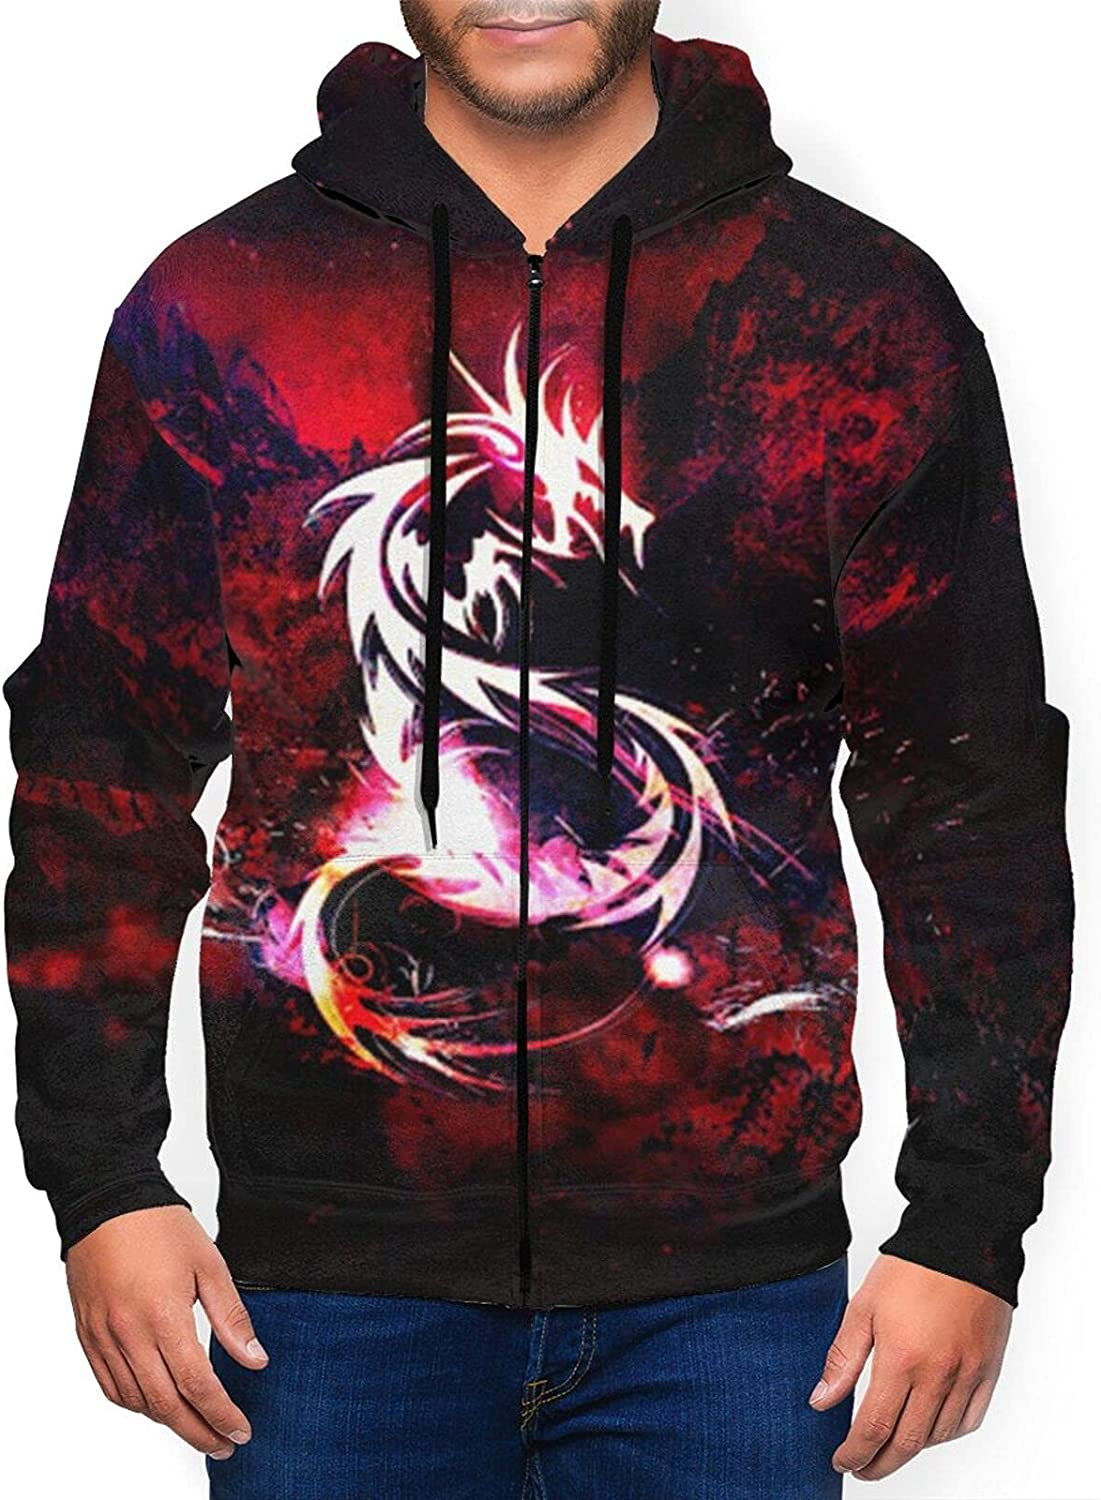 Mens Dargon 3d Zipper Hoodies, Novelty Graphic Sweater shirts Colorful Pattern for Autumn,Winter Casual